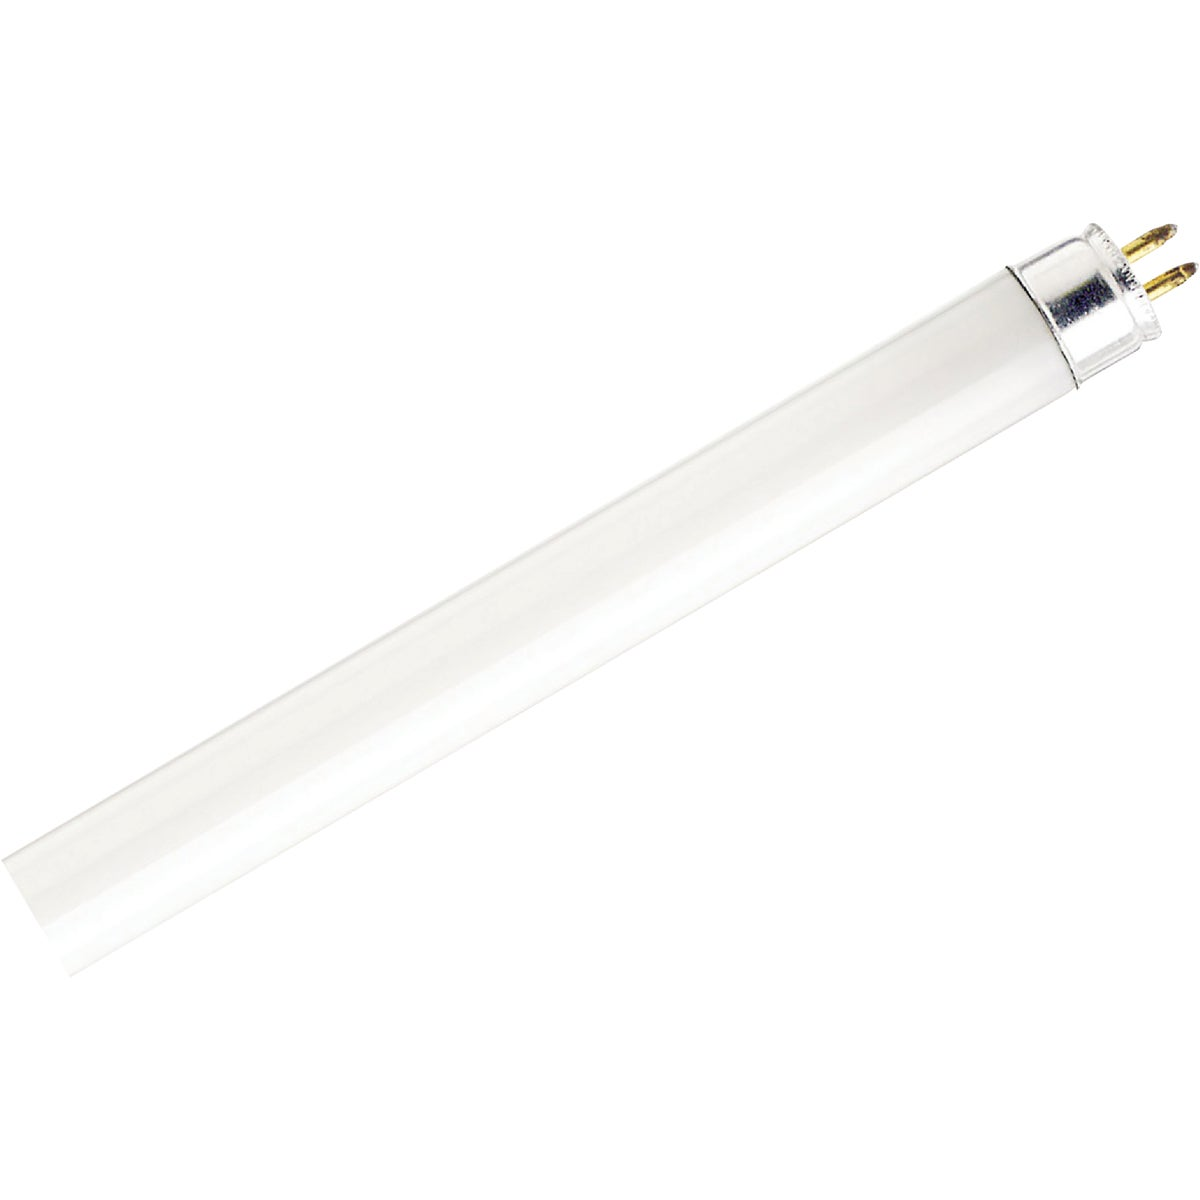 "13W21"" T5 WW FLUOR TUBE - 25426 F13T5/WW by G E Lighting"